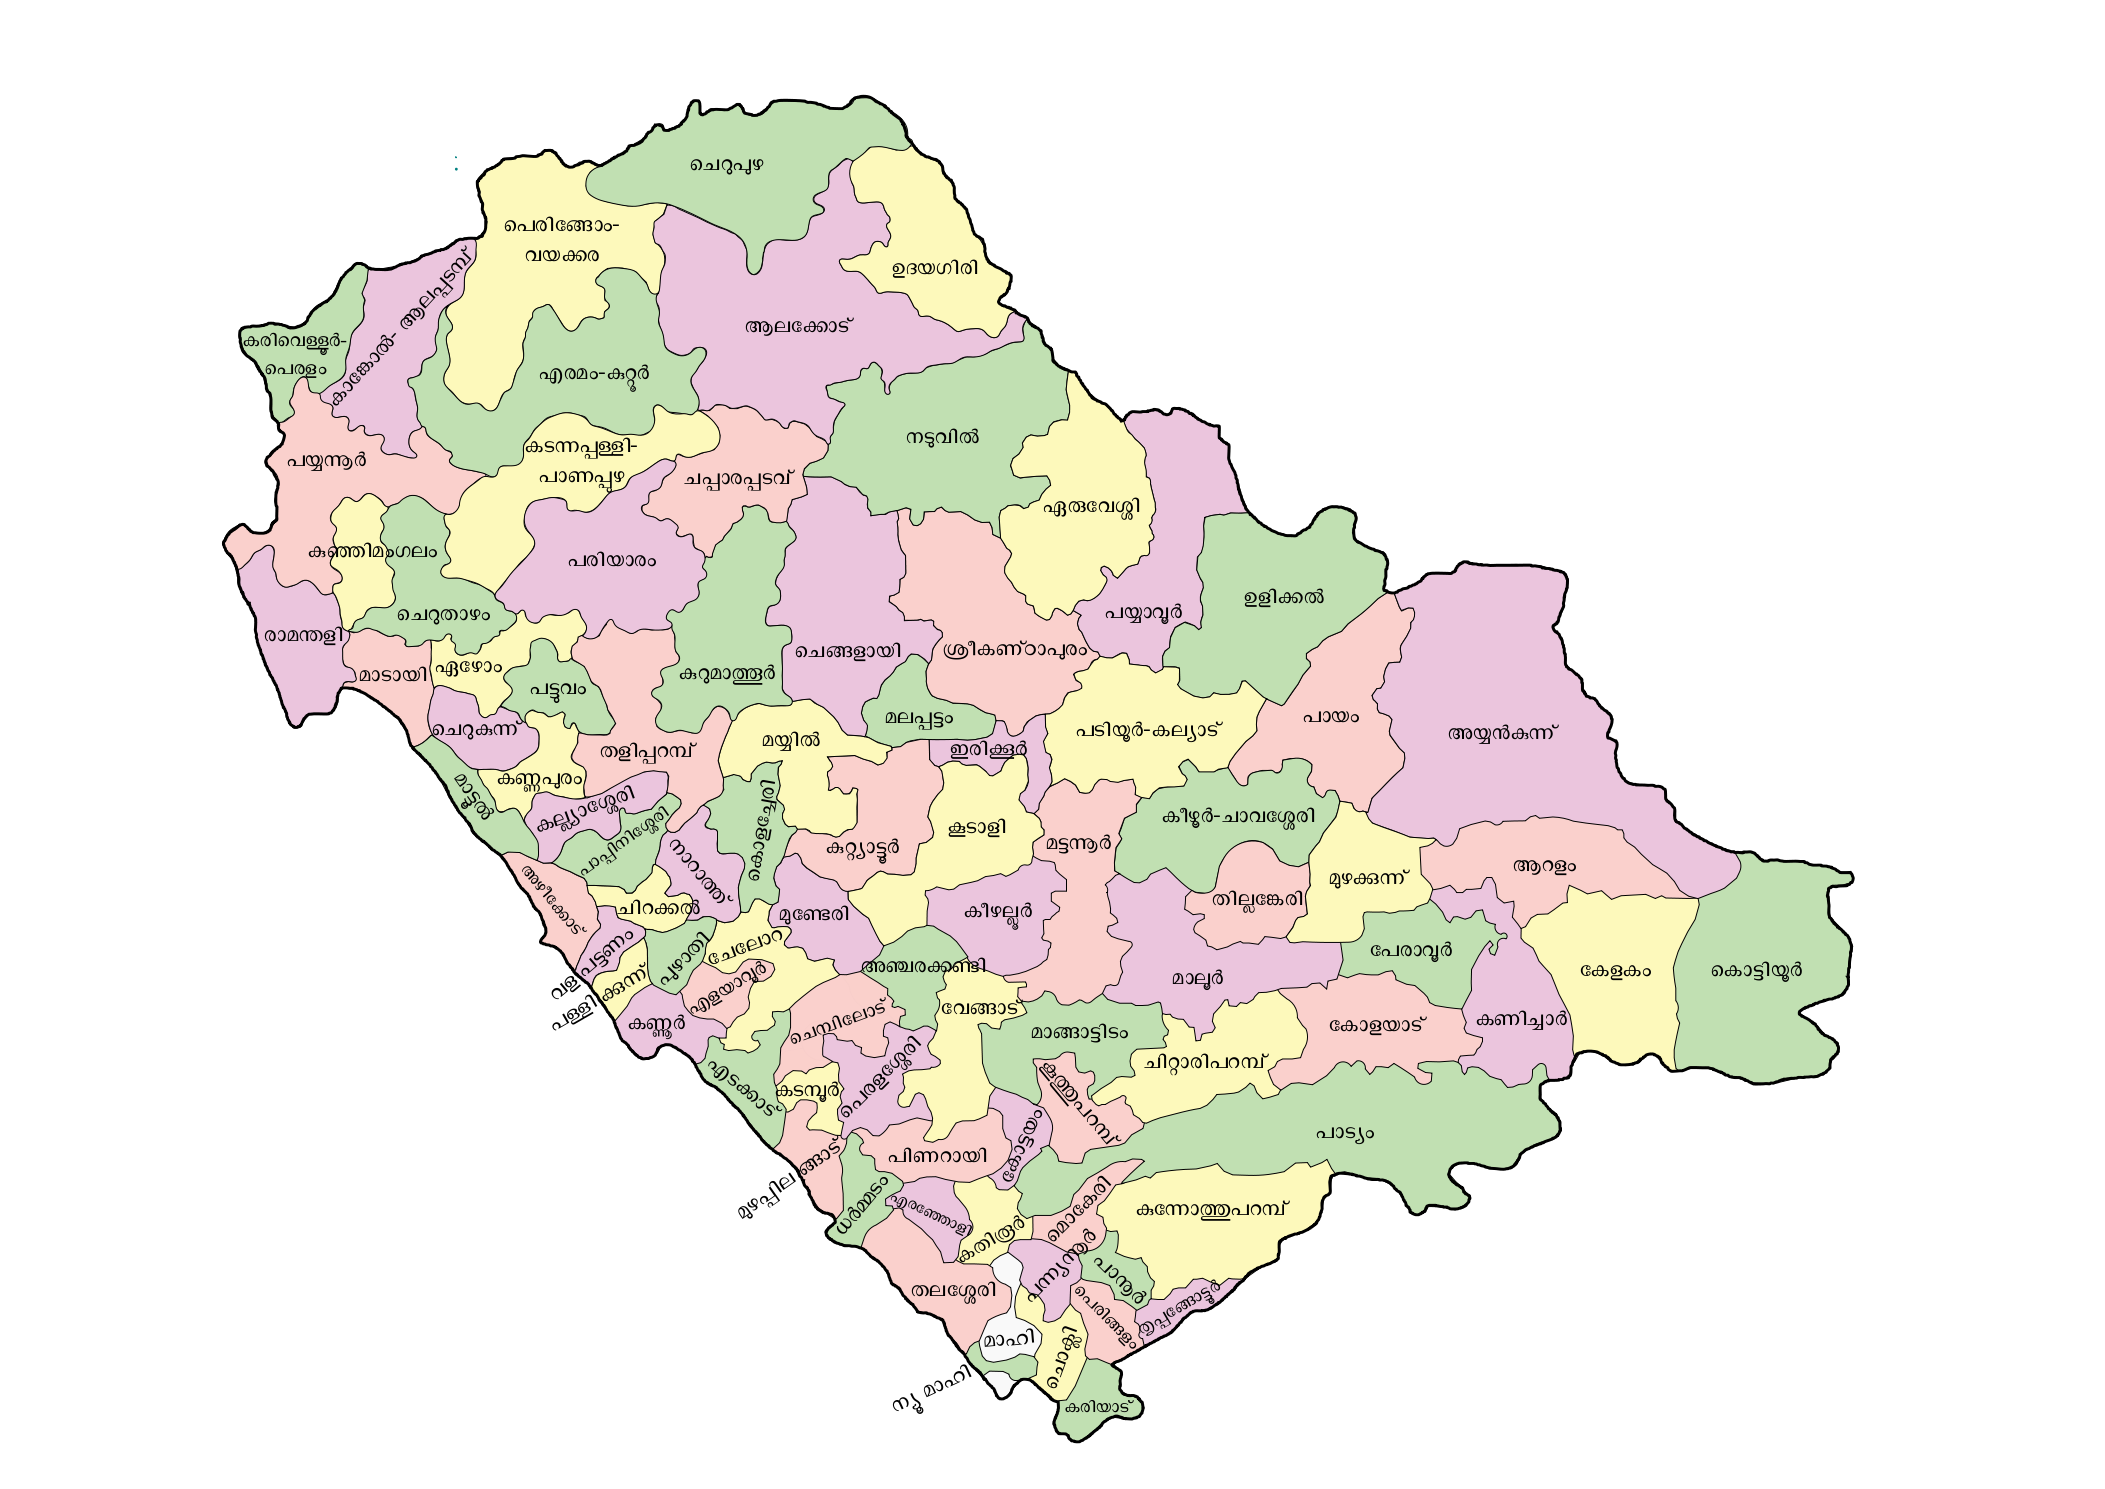 FileKannurdistrictmapmlpng Wikimedia Commons - Kannur map